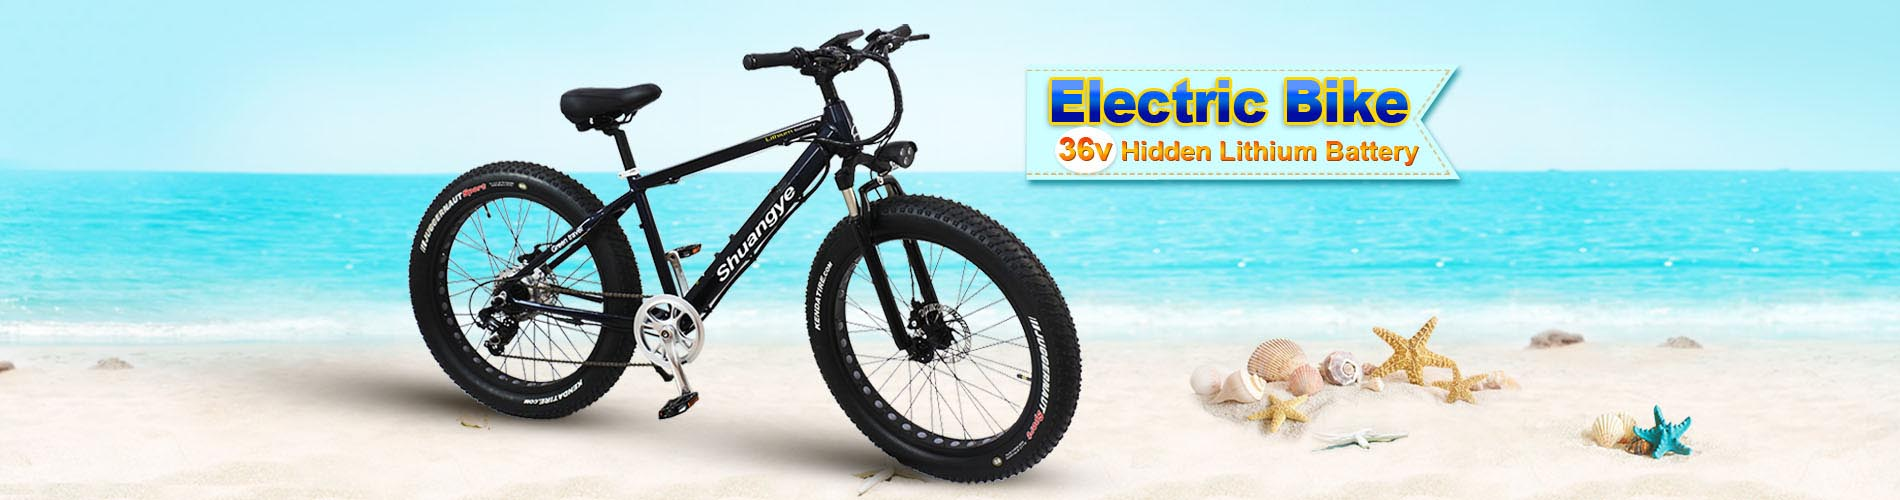 "26"" elektro mountainbikes A6AH26 instrcution manual"